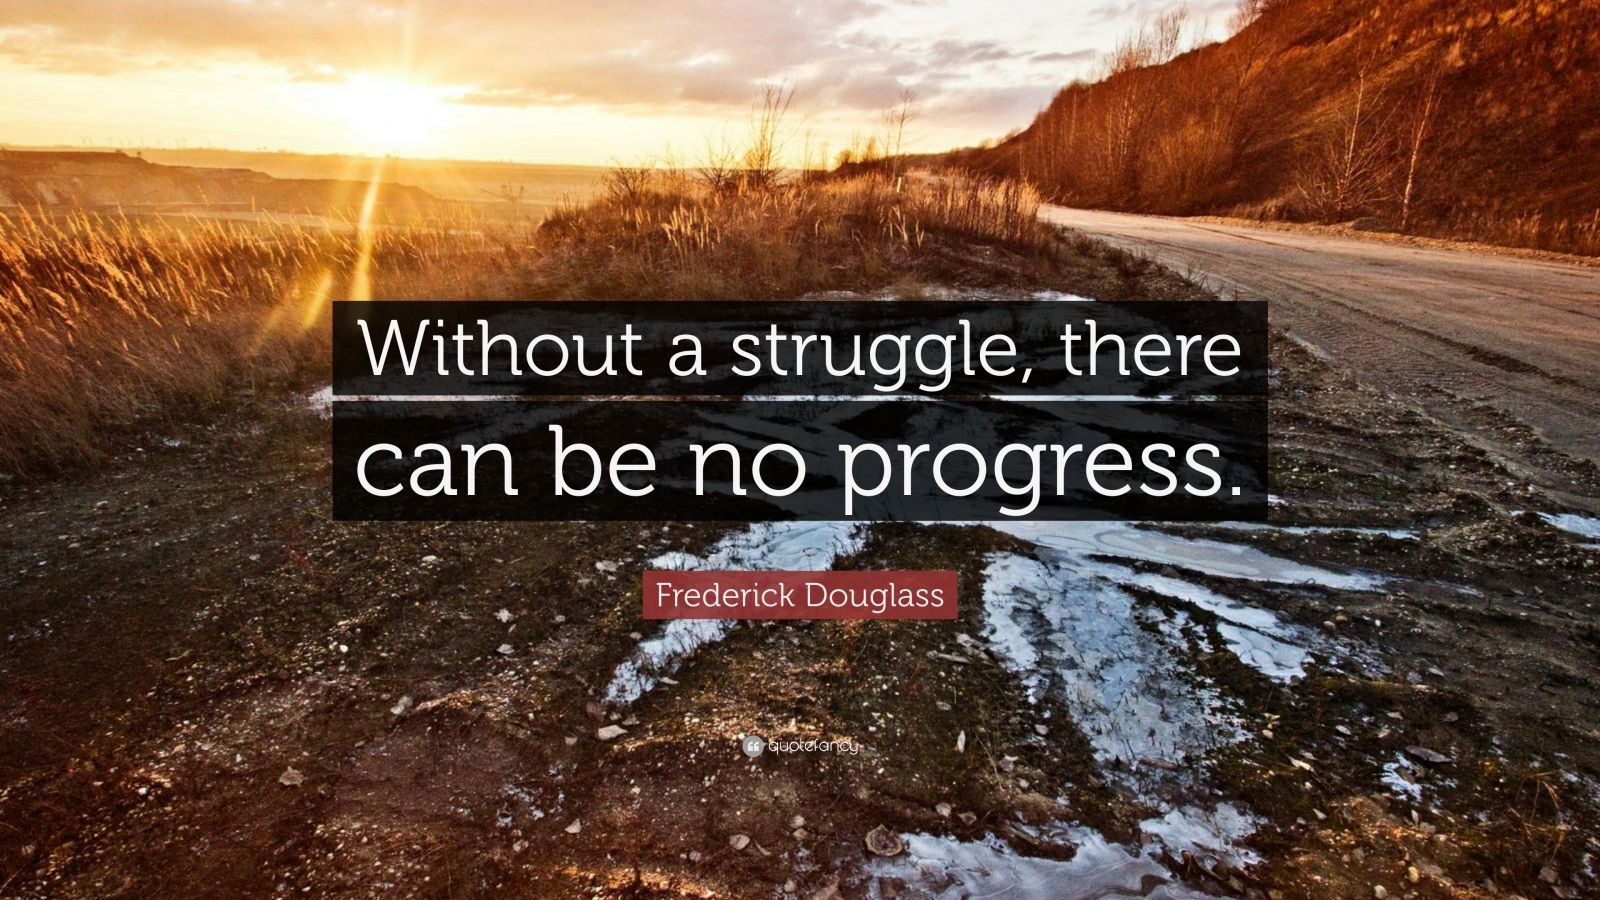 frederick douglass quotes 100  frederick douglass quote out a struggle there can be no progress